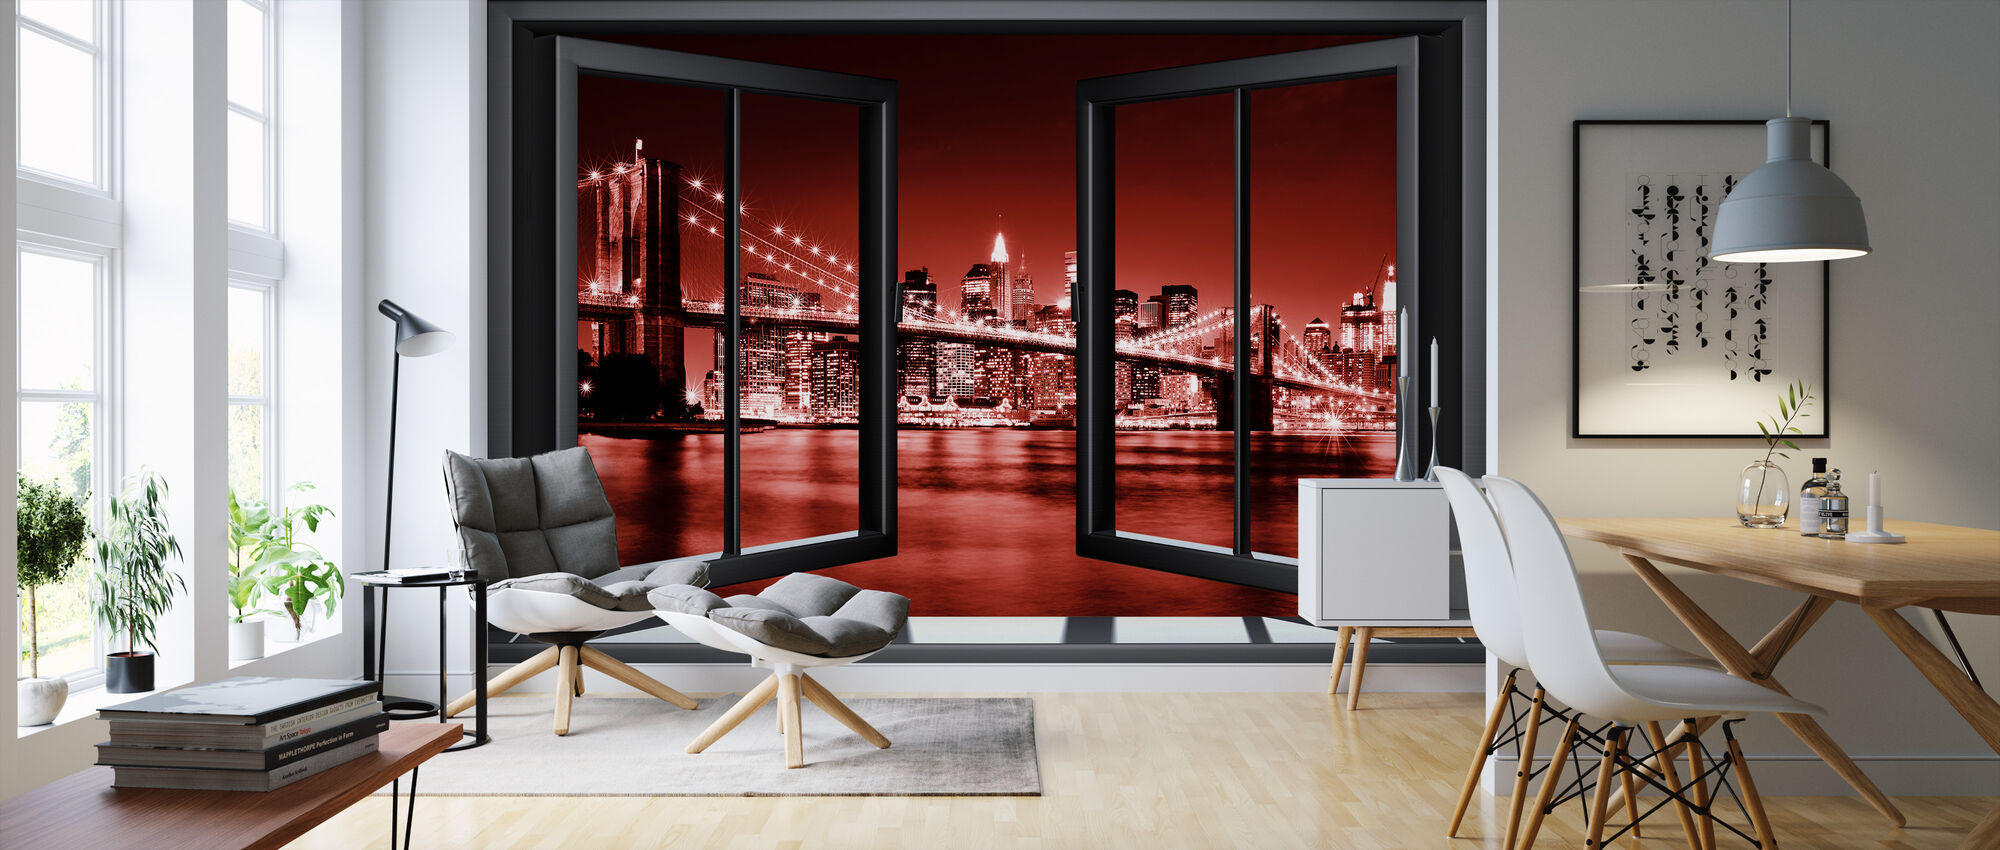 Brooklyn Bridge Through Window - Red - Wallpaper - Living Room